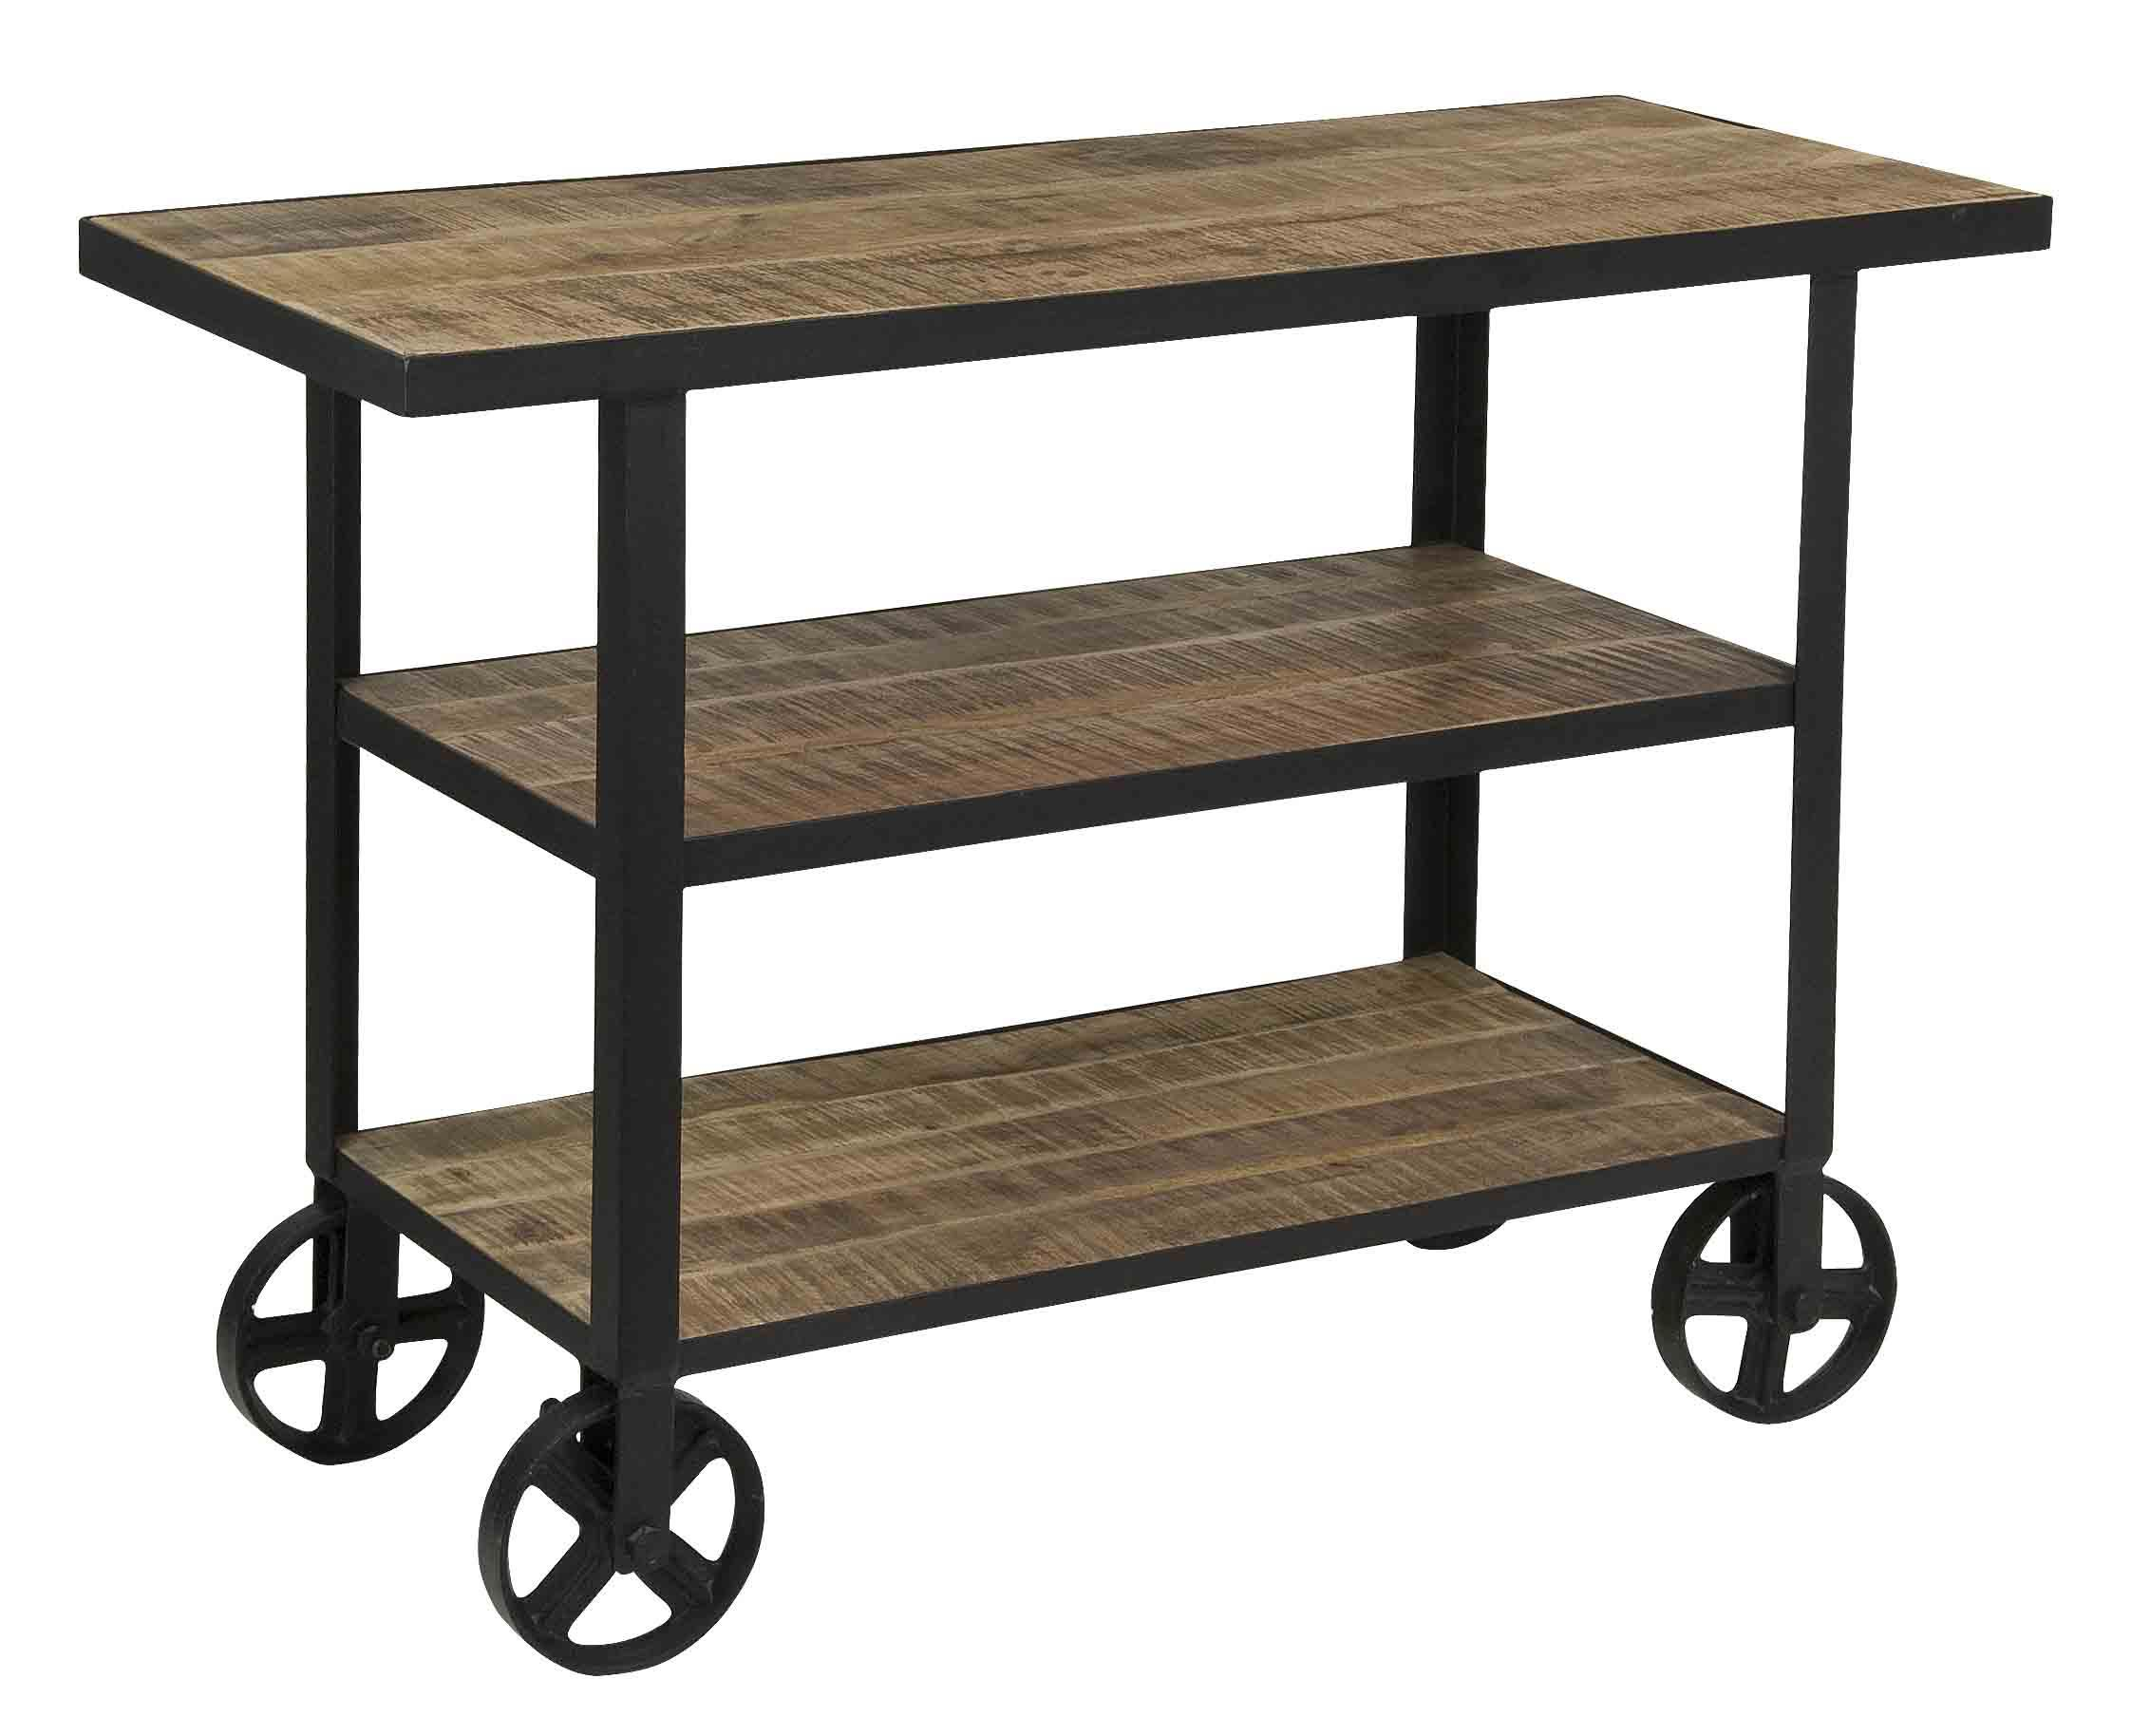 Coast to Coast Imports Coast to Coast Accents Two Shelf Trolley Cart - Item Number: 75358